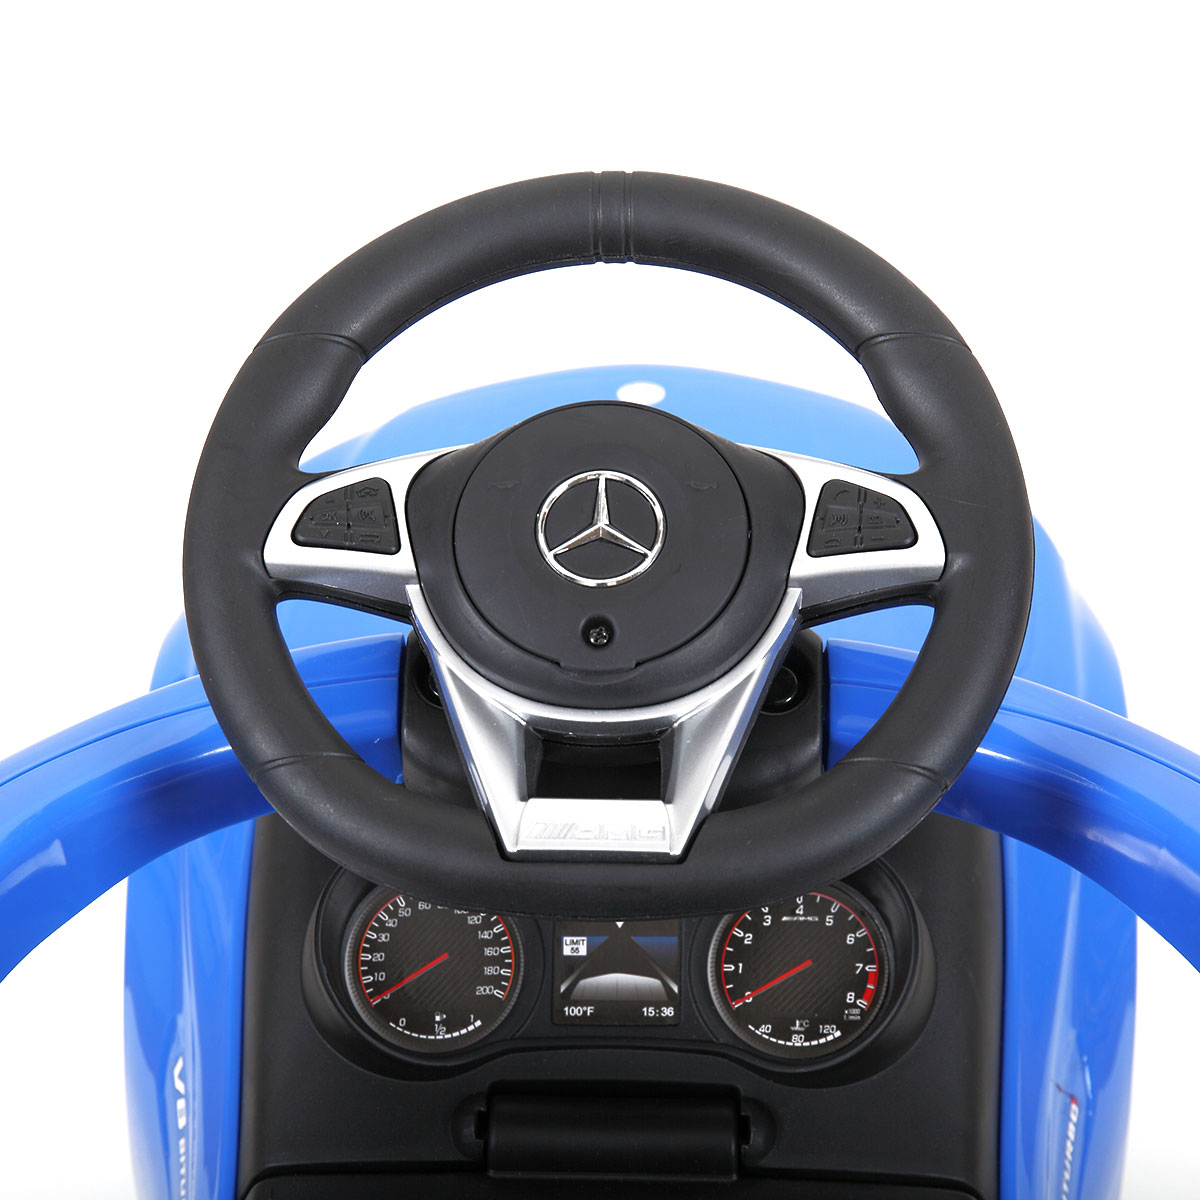 Mercedes Benz Ride On Push Car for Toddlers, Blue TH17N0346 j 1